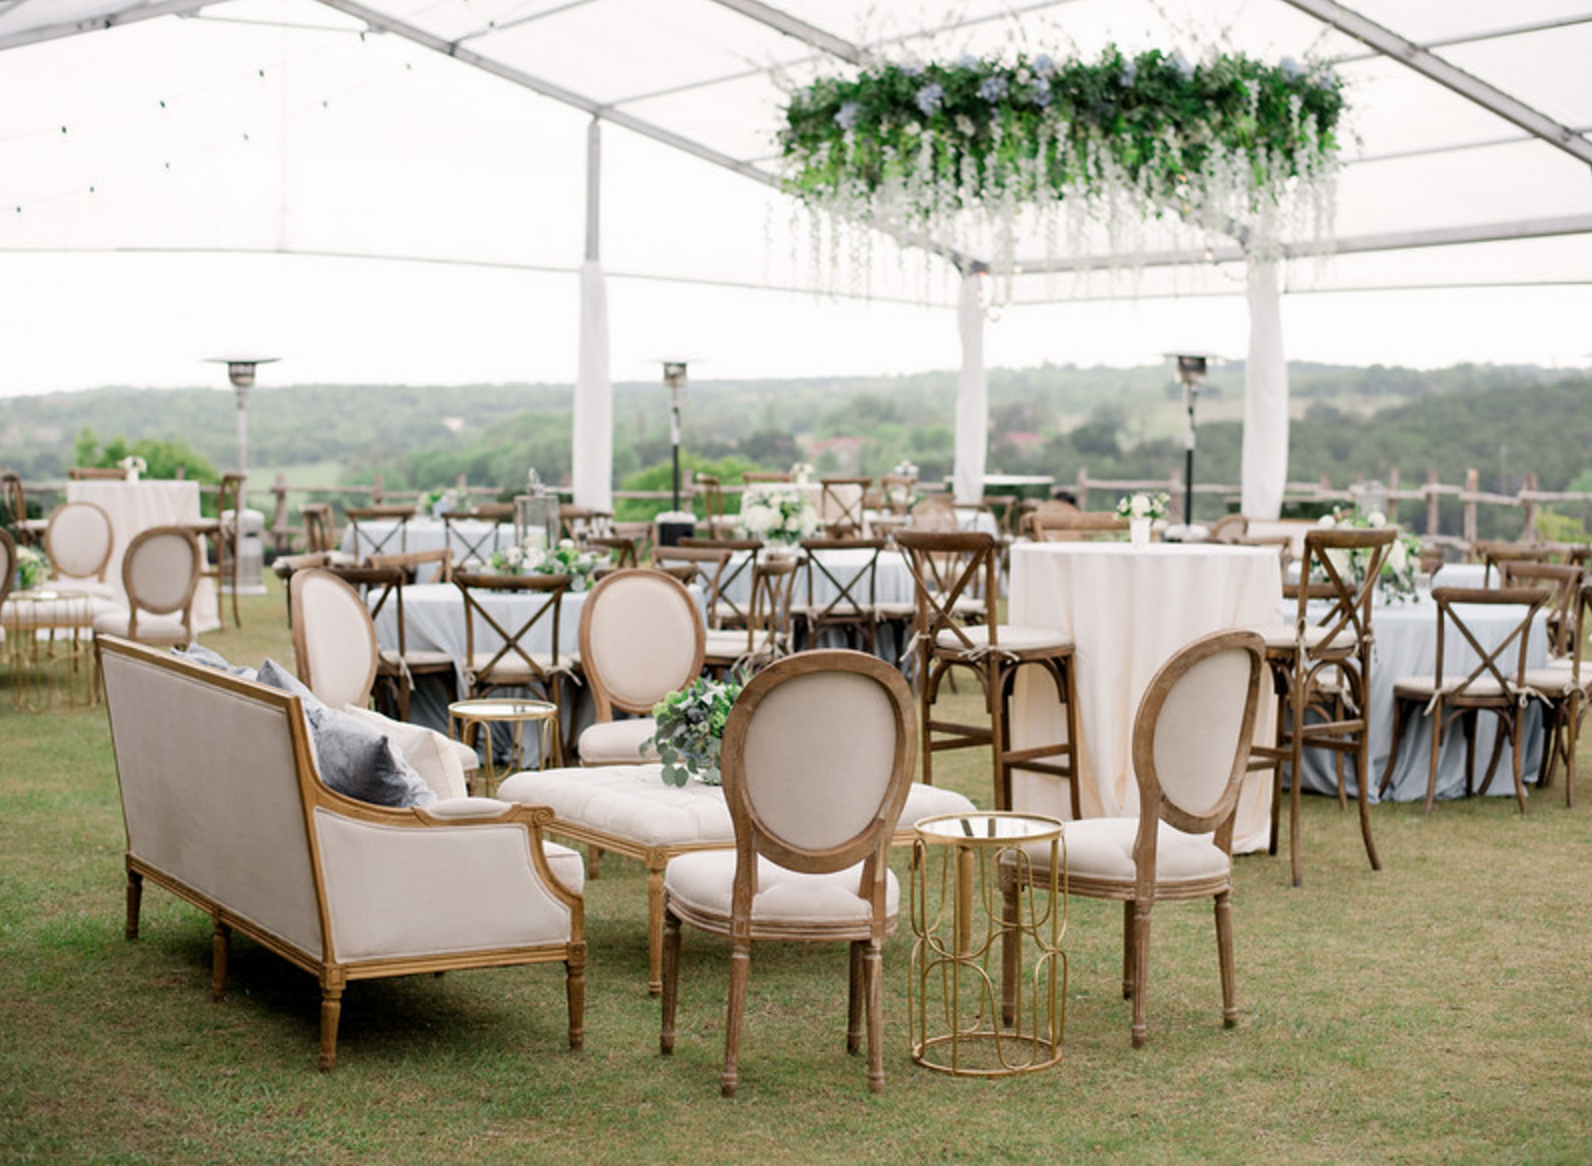 Outdoor Tent Wedding Reception | Spring Texas Vineyard Wedding